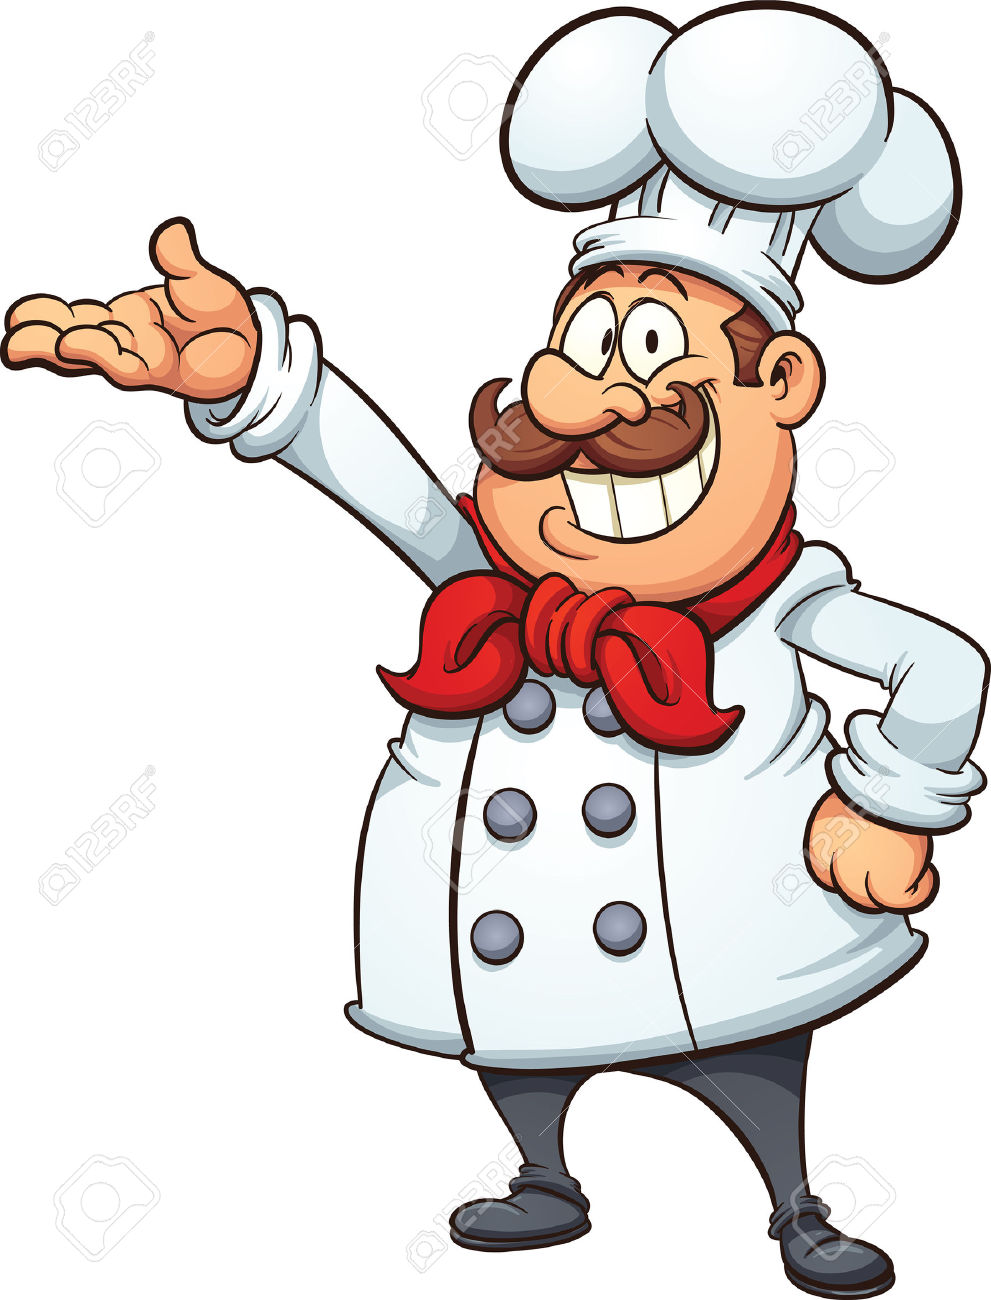 74,239 Chef Cliparts, Stock Vector And Royalty Free Chef Illustrations.